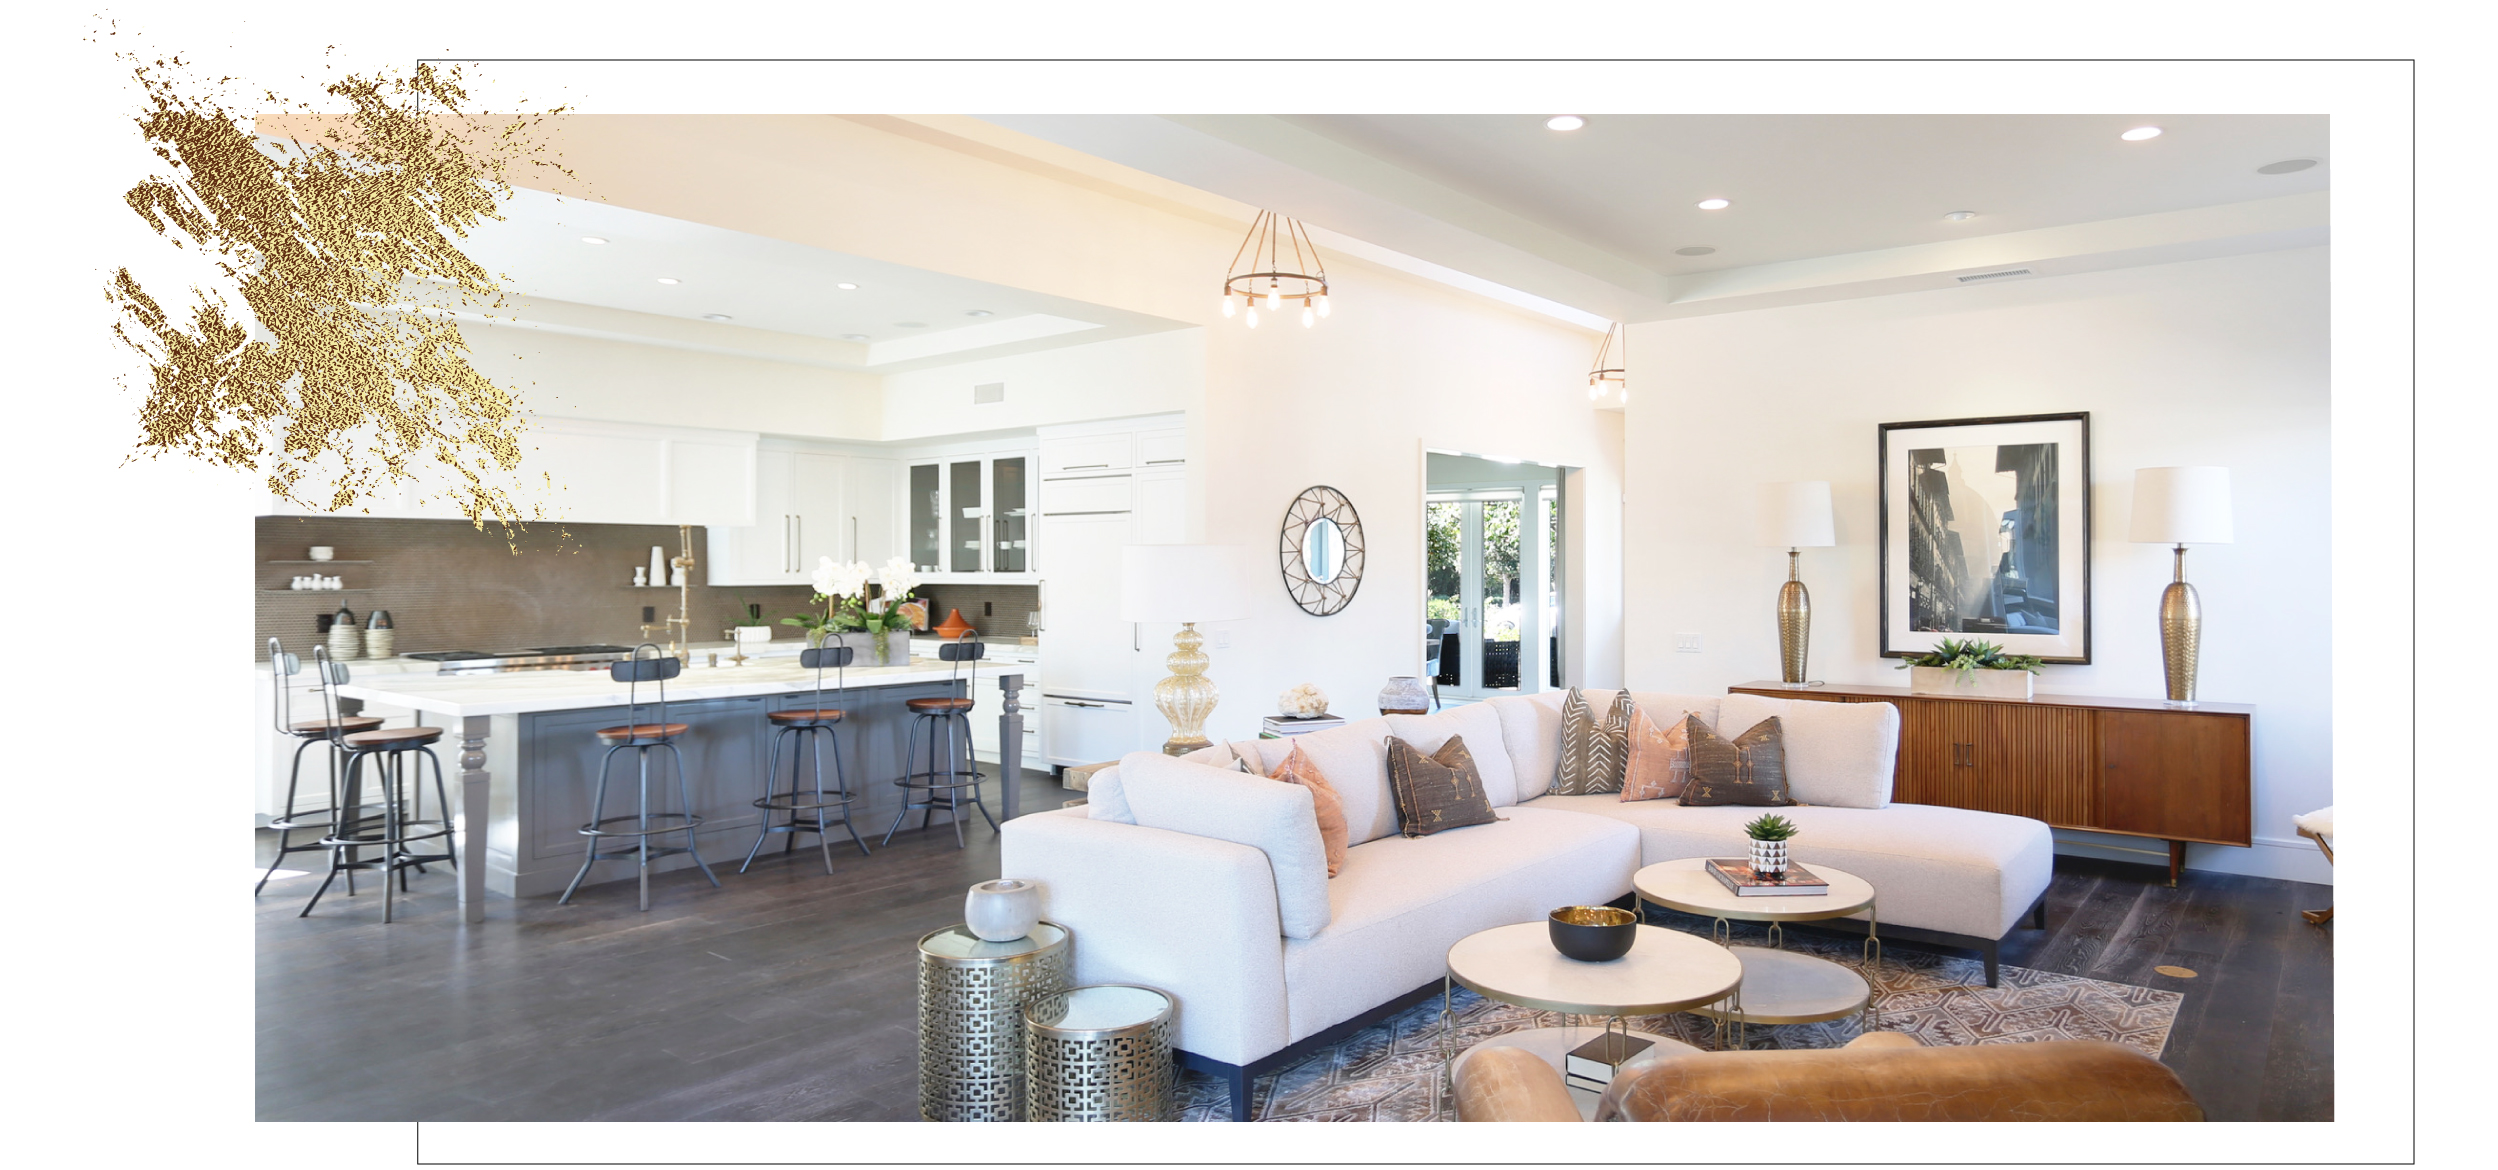 GET INSPIRED - From modern Crystal Cove mansions to Old World Pelican Hill estates, our team has designed some of Orange County's finest homes.